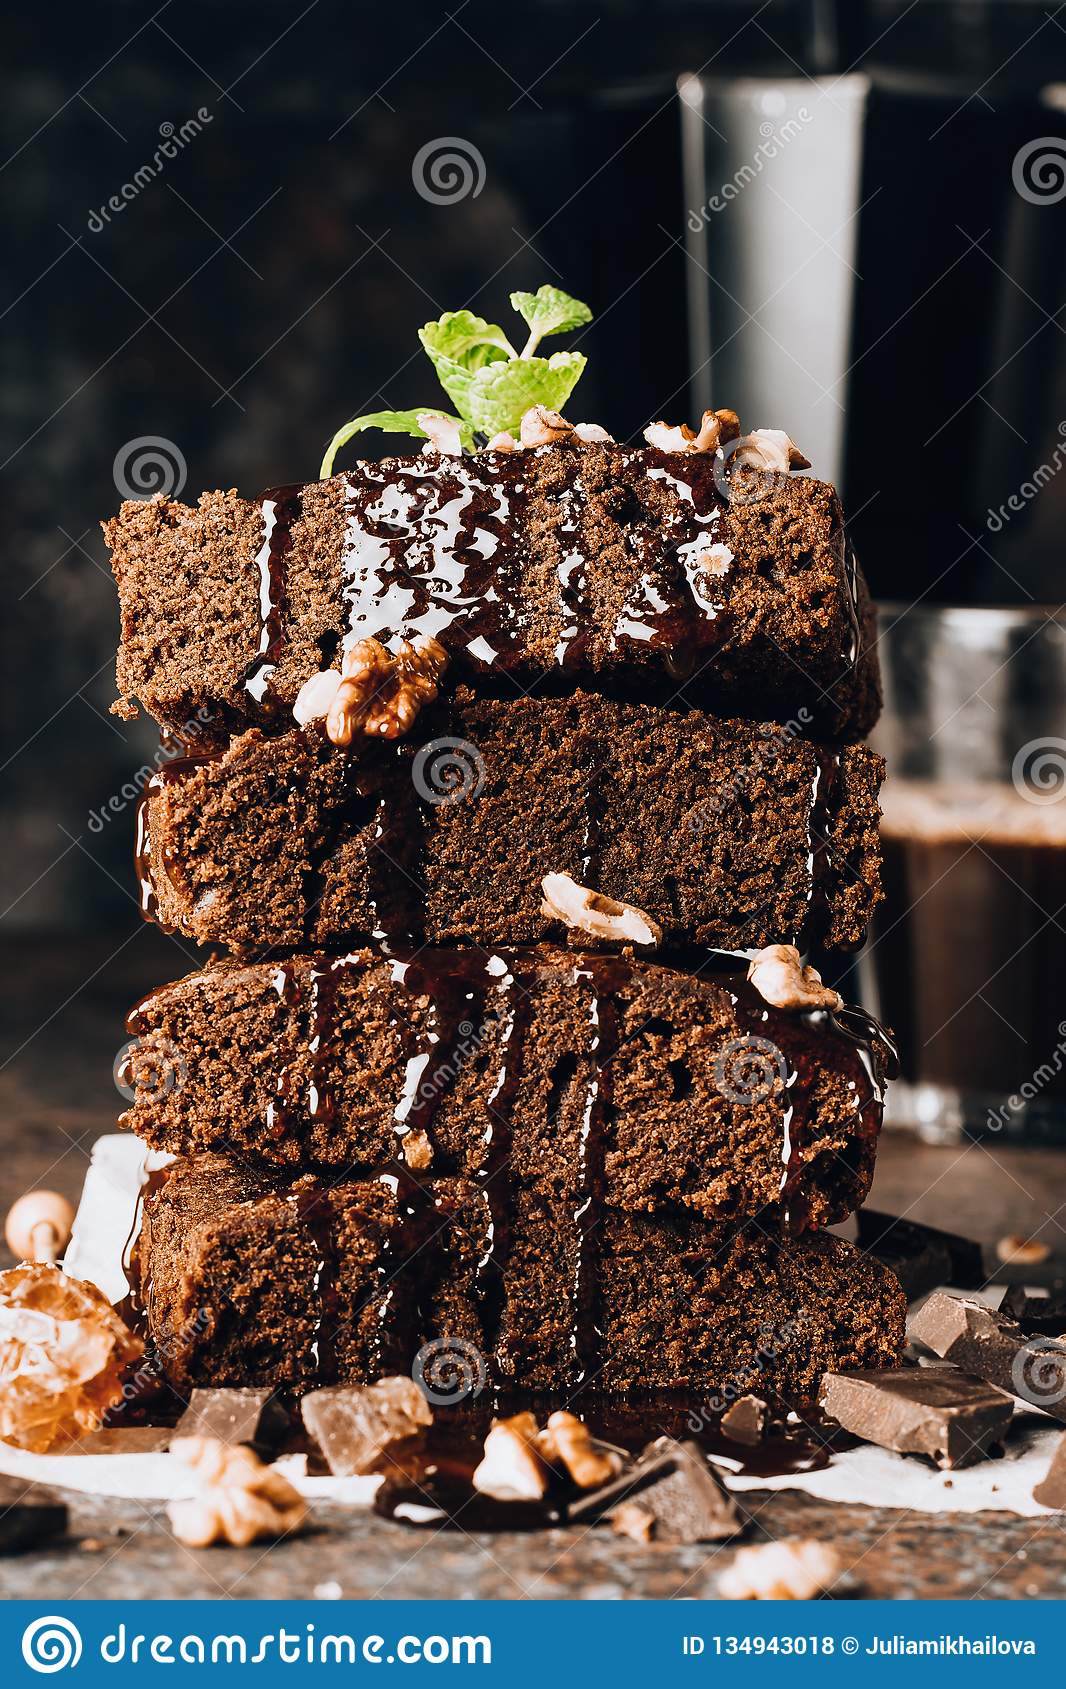 Homemade Dark Chocolate Brownies Topping With Nut Slices And Mint